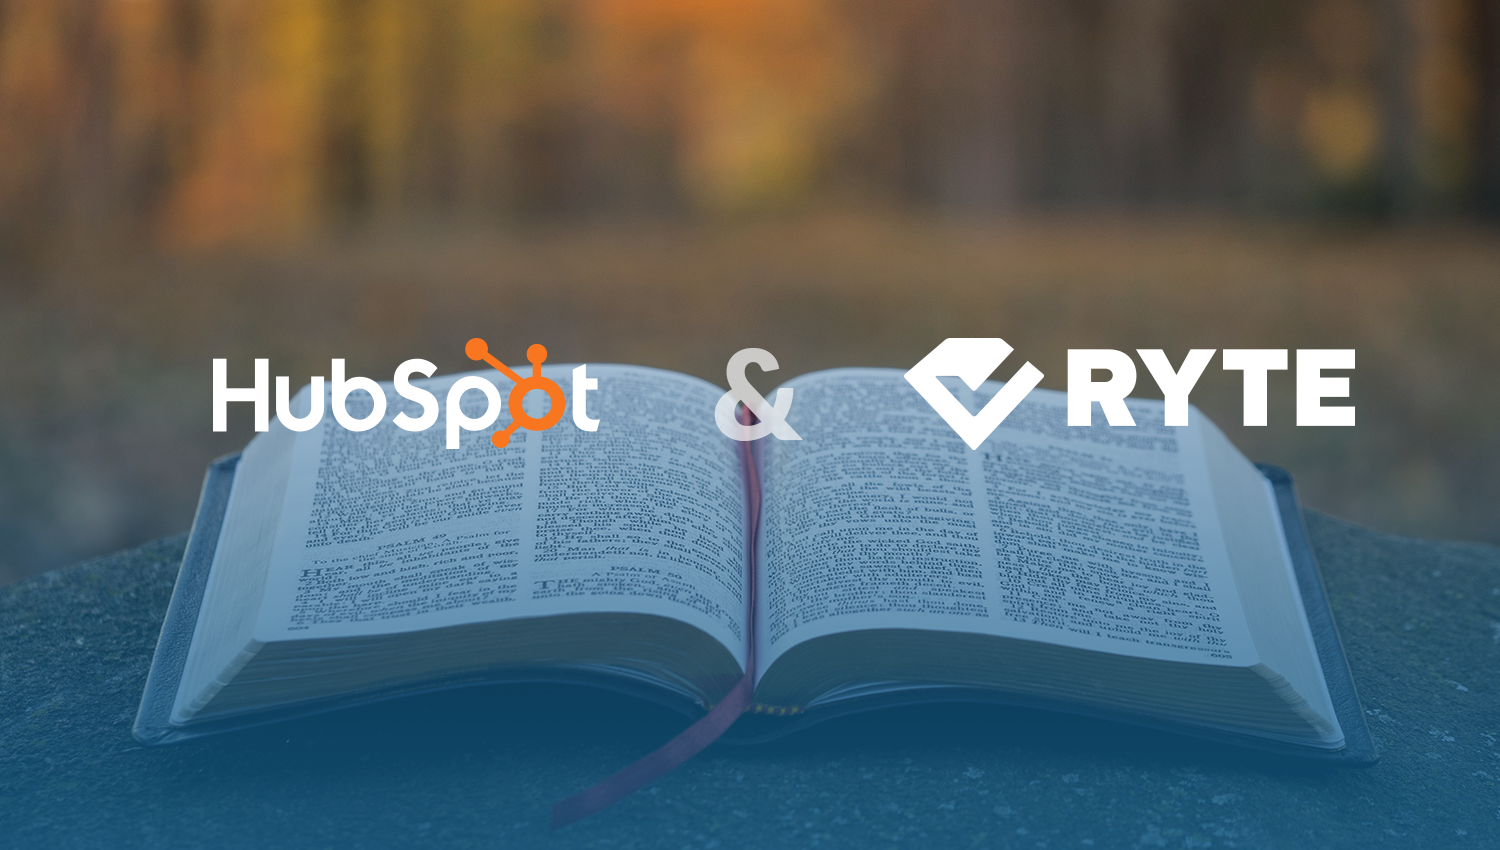 SEO-Audit-Ryte-Hubspsot-Ebook